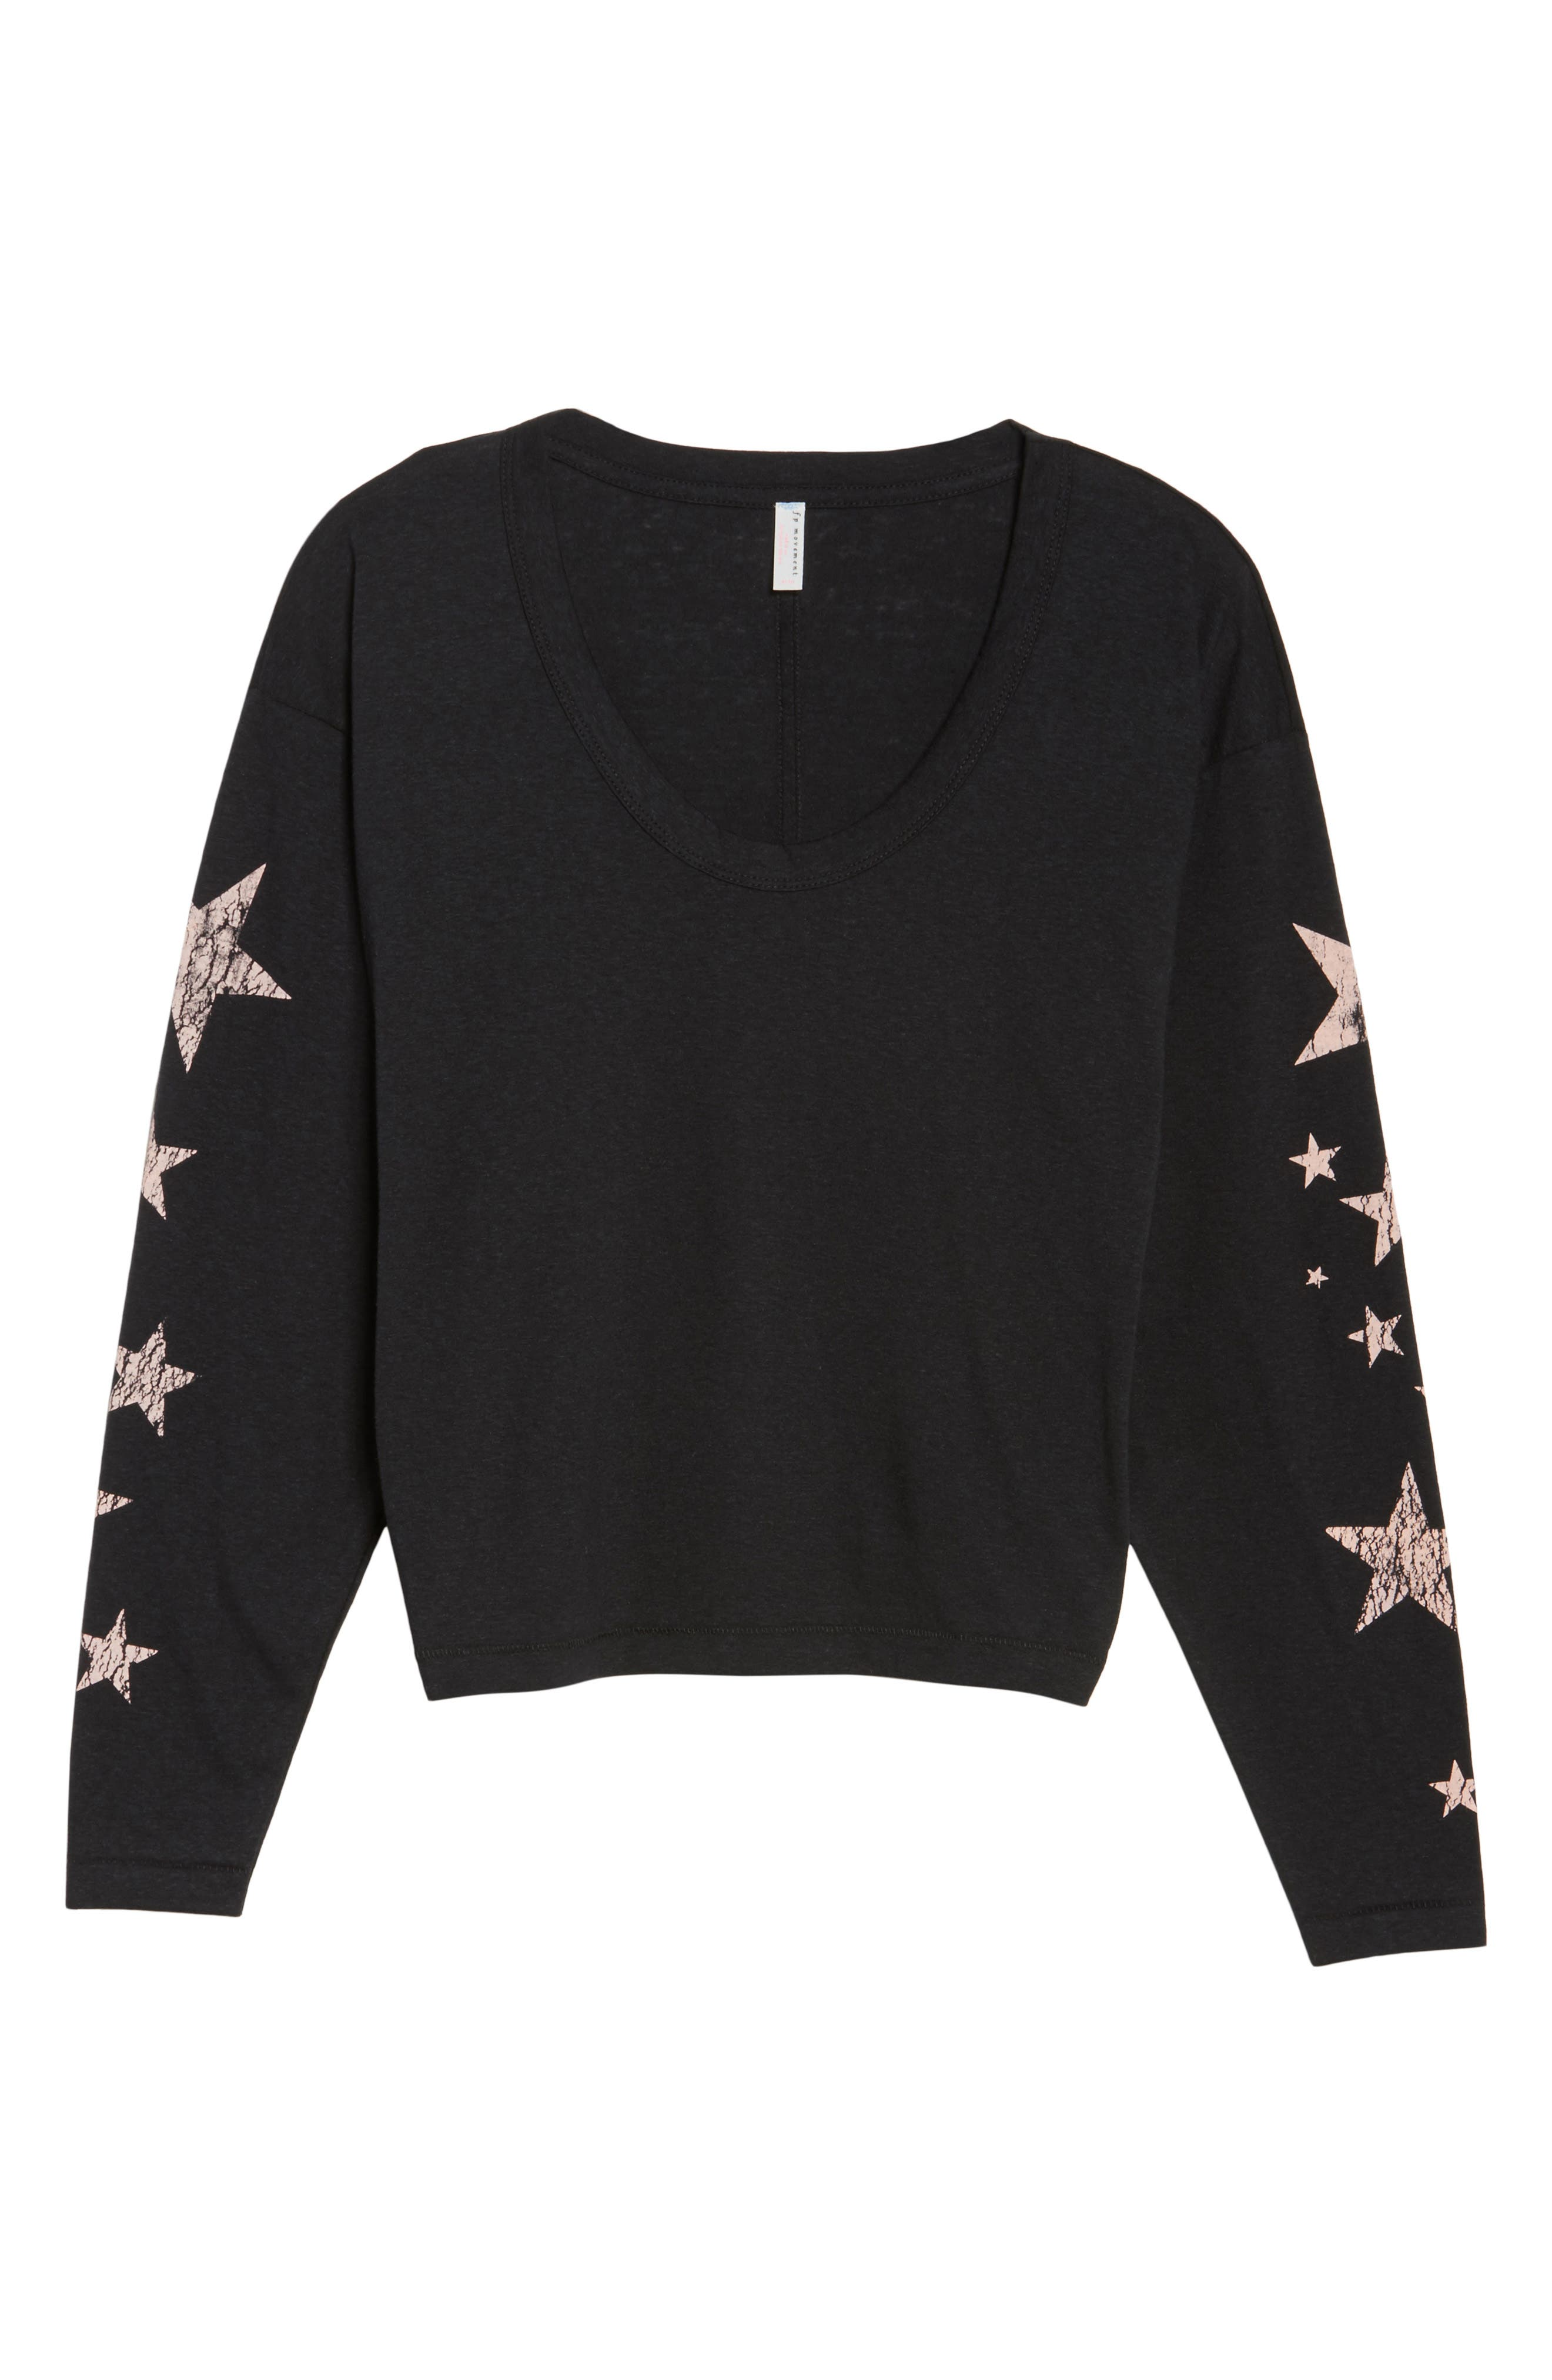 FREE PEOPLE MOVEMENT, Melrose Star Graphic Top, Alternate thumbnail 6, color, 001